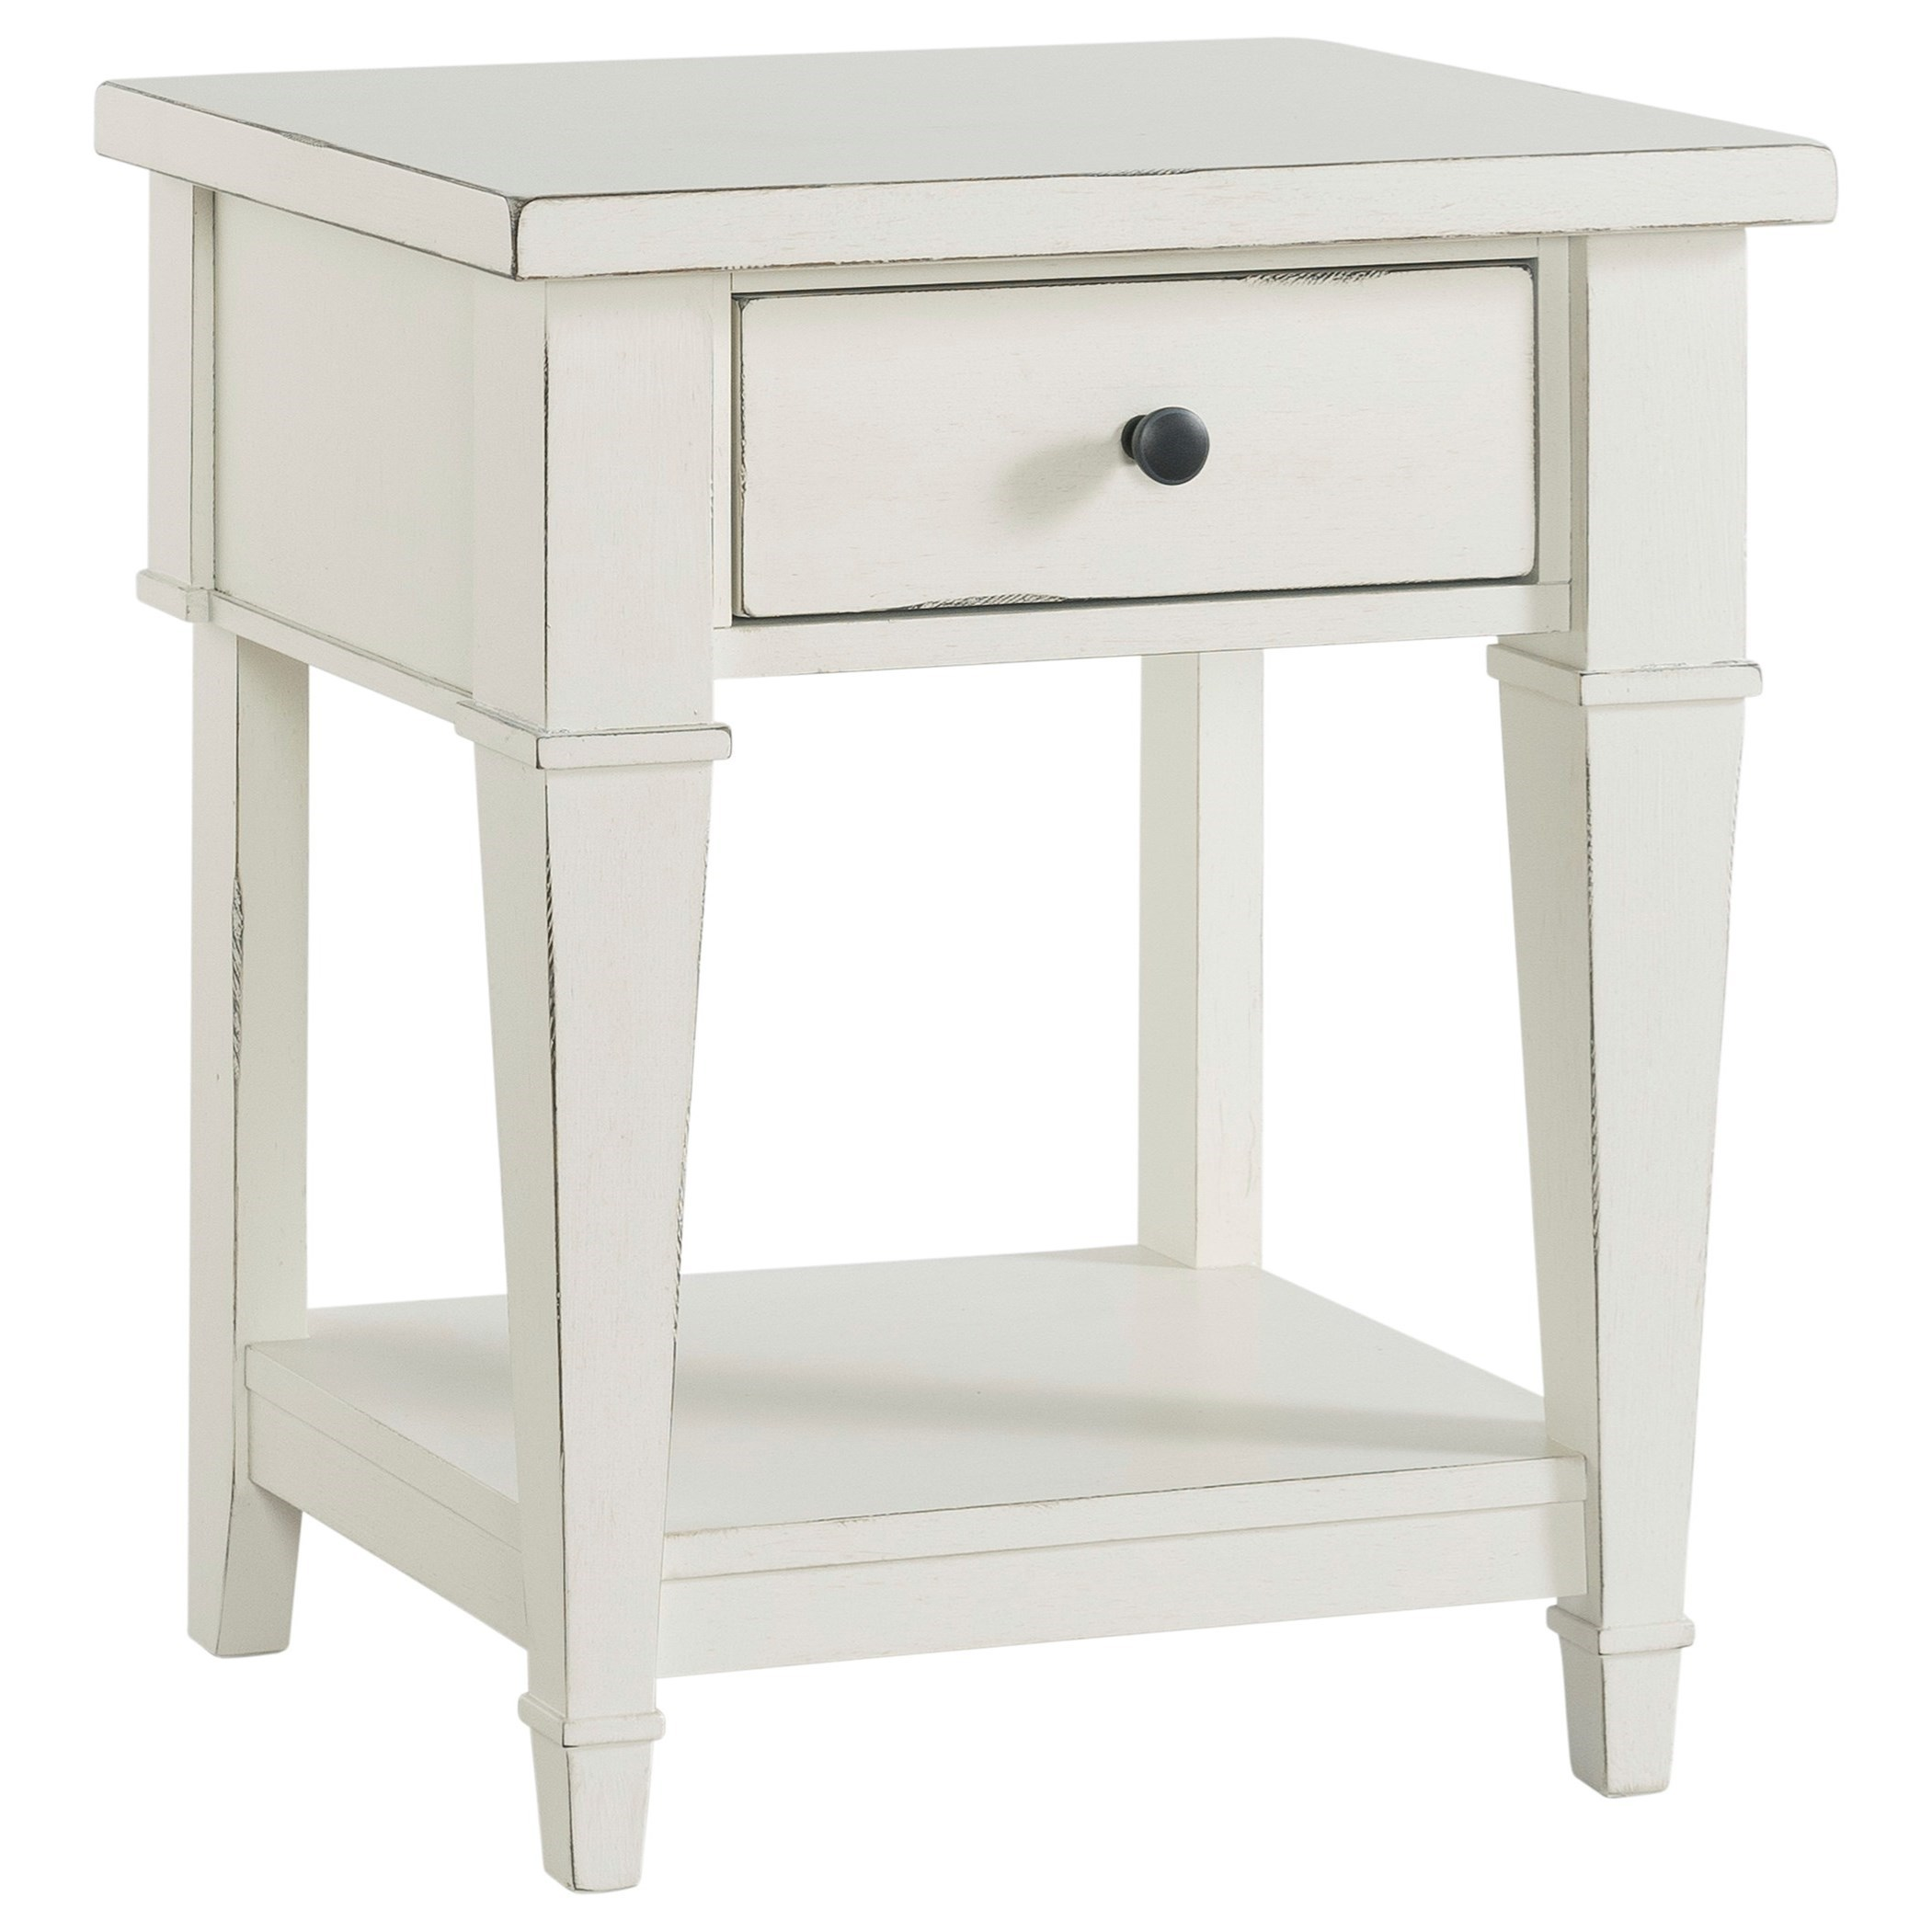 Cottage Style One Drawer Youth Nightstand w/ Open Shelf